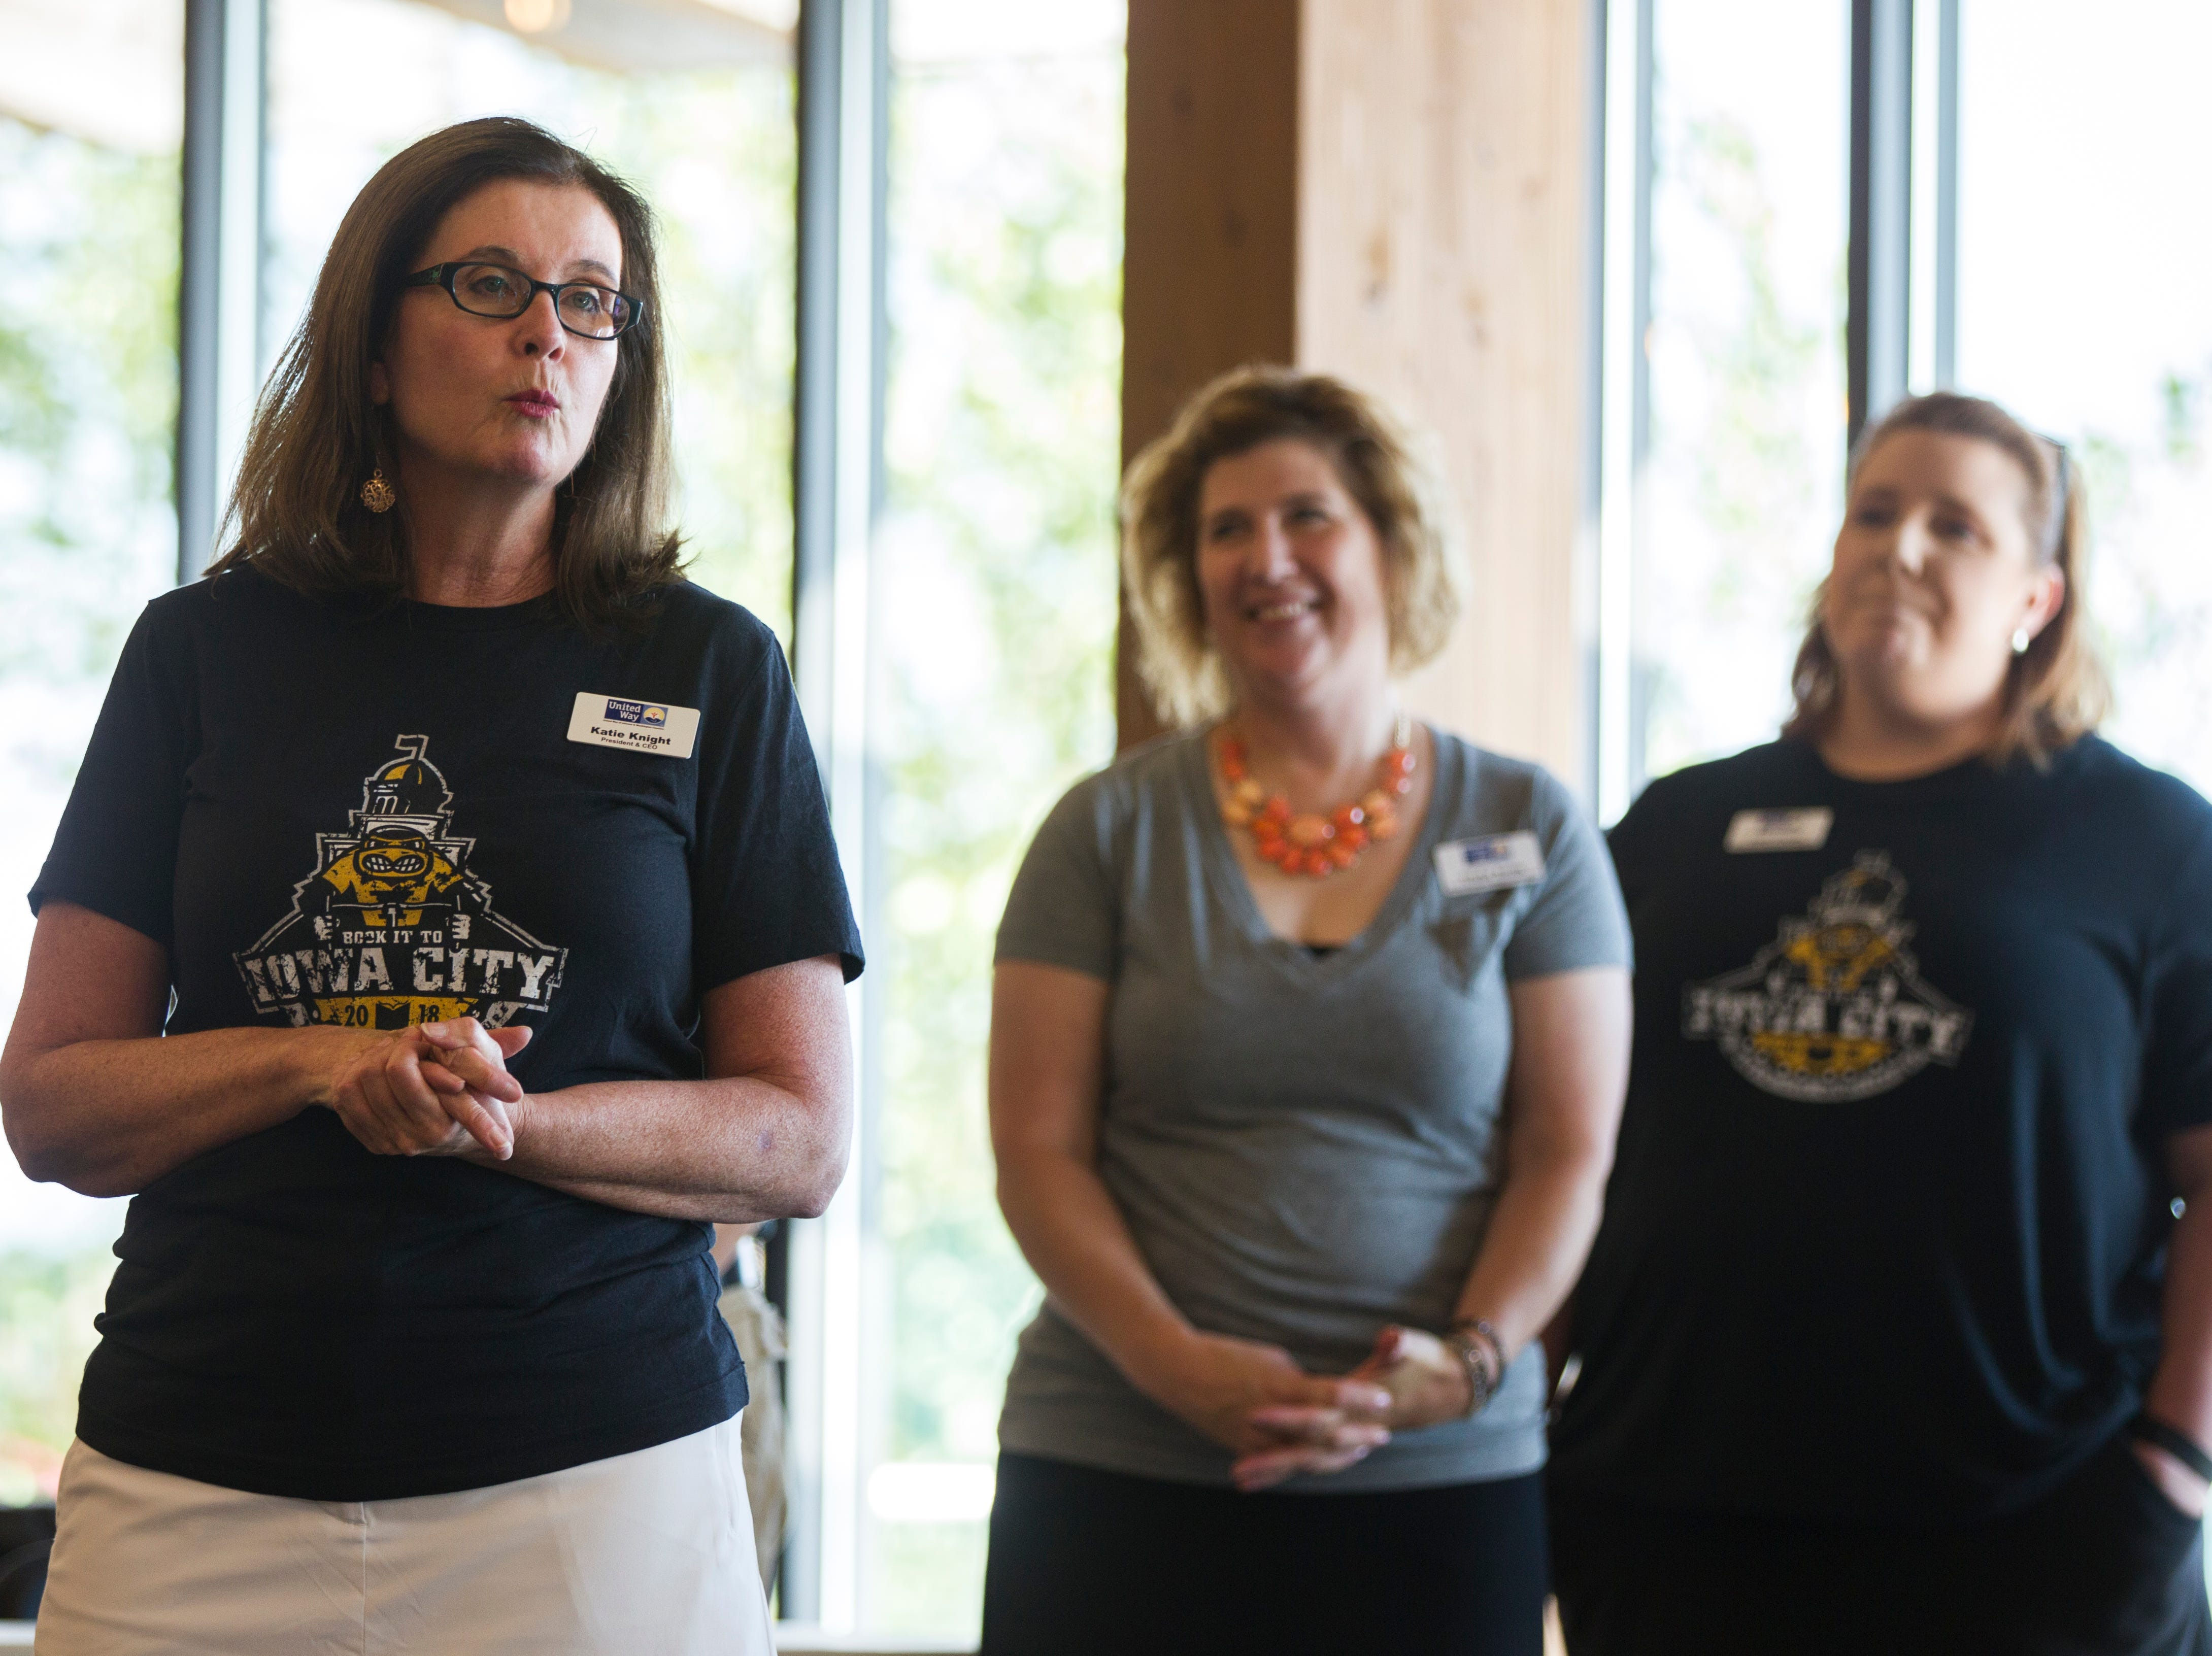 Katie Knight, President and CEO of United Way of Johnson and Washington Counties, speaks during an event for Iowa City RAGBRAI volunteers on Monday, Aug. 27, 2018, inside the Park Lodge at Terry Trueblood Recreation Area in Iowa City.